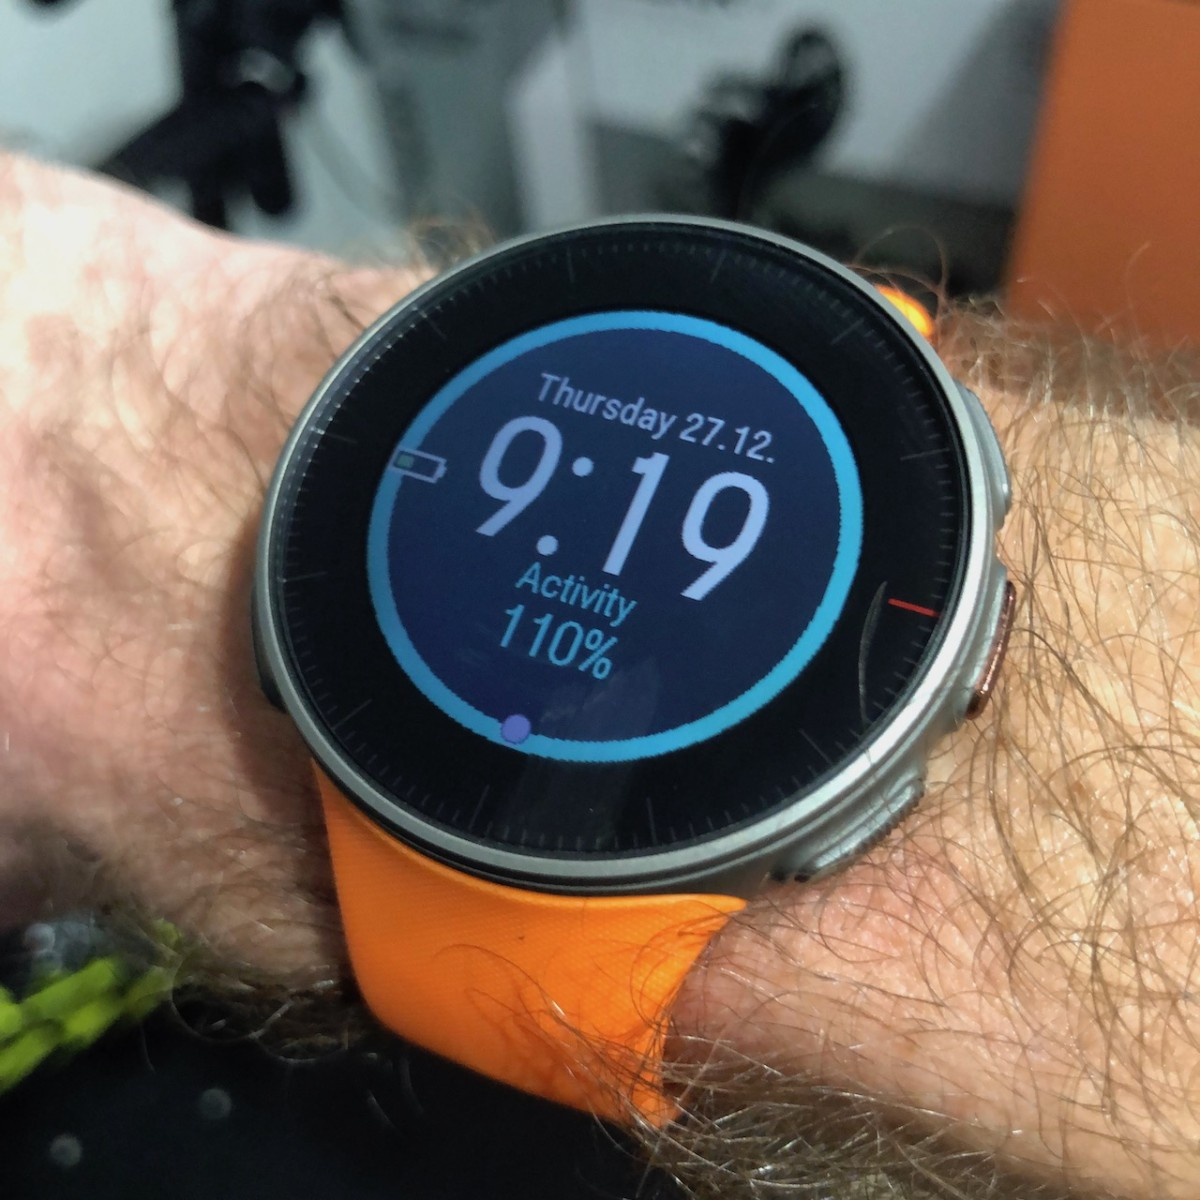 TitaniumGeek IMG 7904 Polar Vantage V Review   A Garmin Killer? Cycling Gear Reviews Heart Rate Monitors Running  running Polar HRM garmin cycling apple watch   Image of IMG 7904